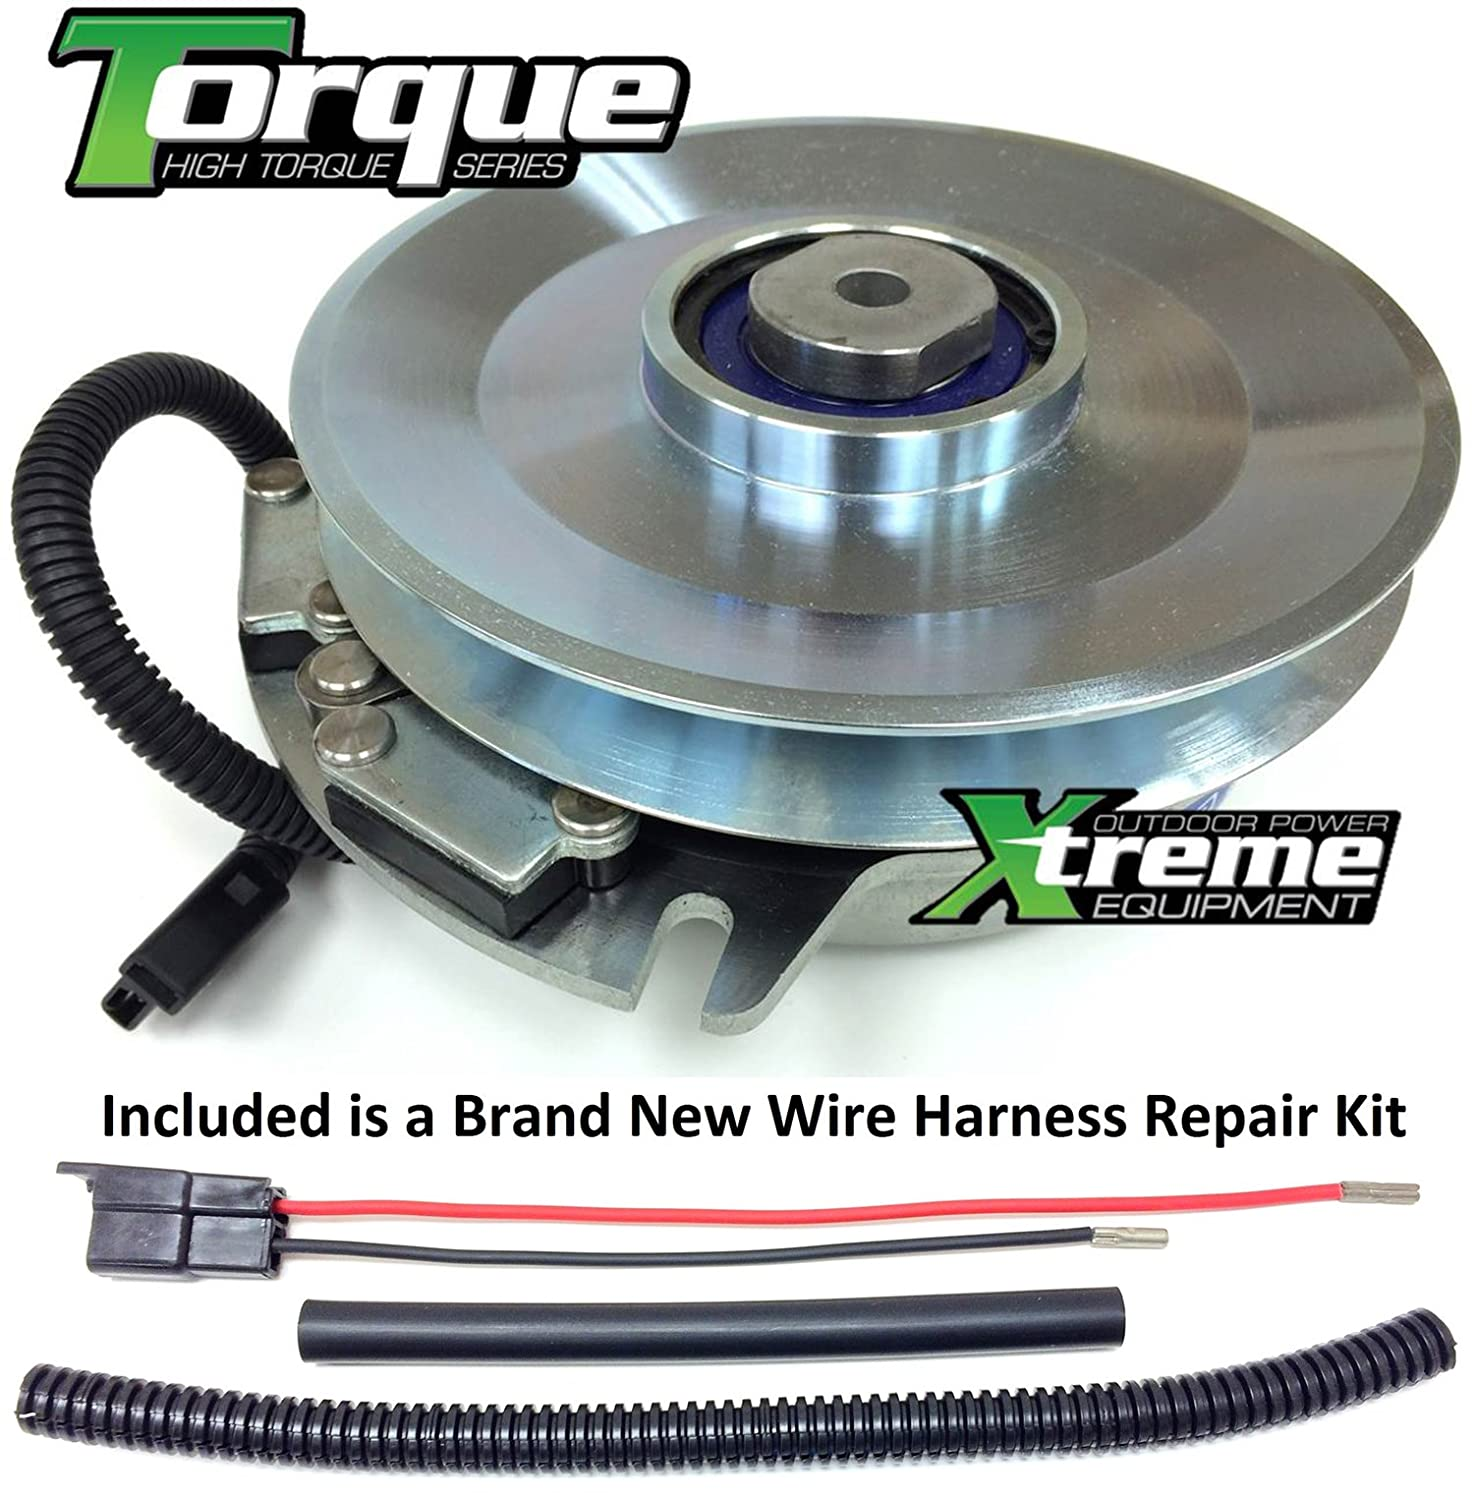 Amazon.com : Xtreme Outdoor Power Equipment Bundle - 2 items: PTO Electric  Blade Clutch, Wire Harness Repair Kit. Replaces Exmark Electric PTO Blade  Clutch ...